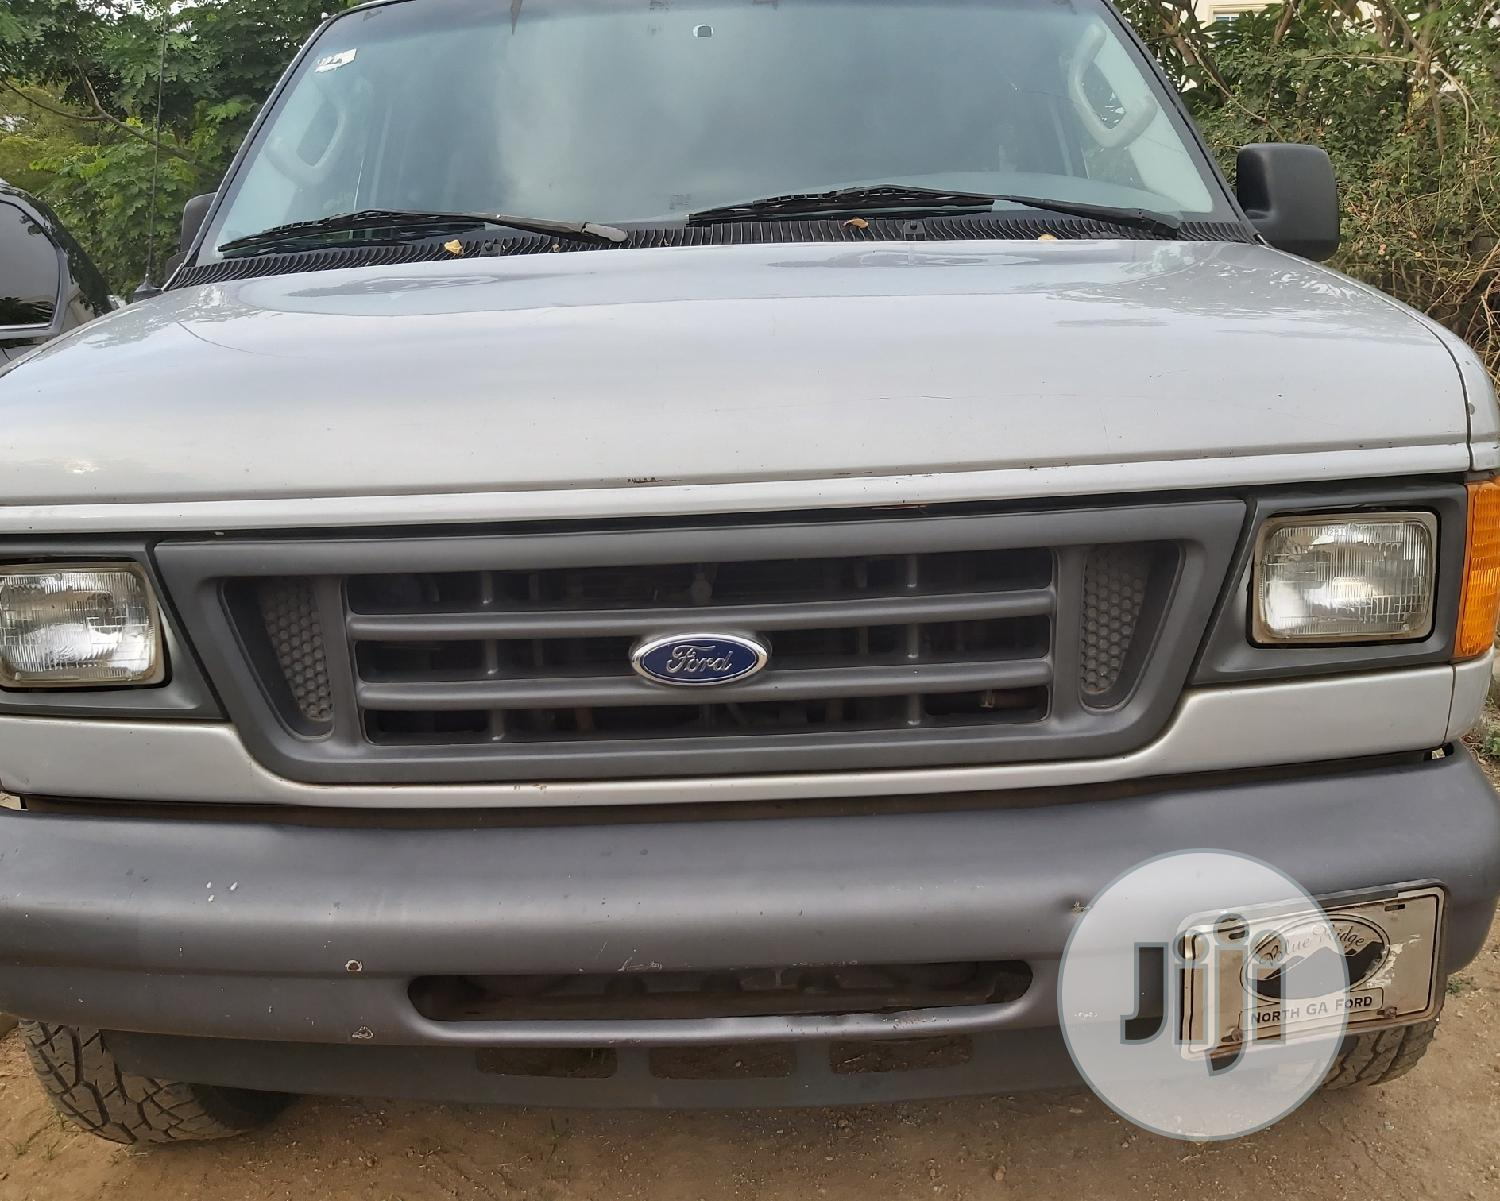 Archive: Ford E-350 2006 XLT Super Duty Gray